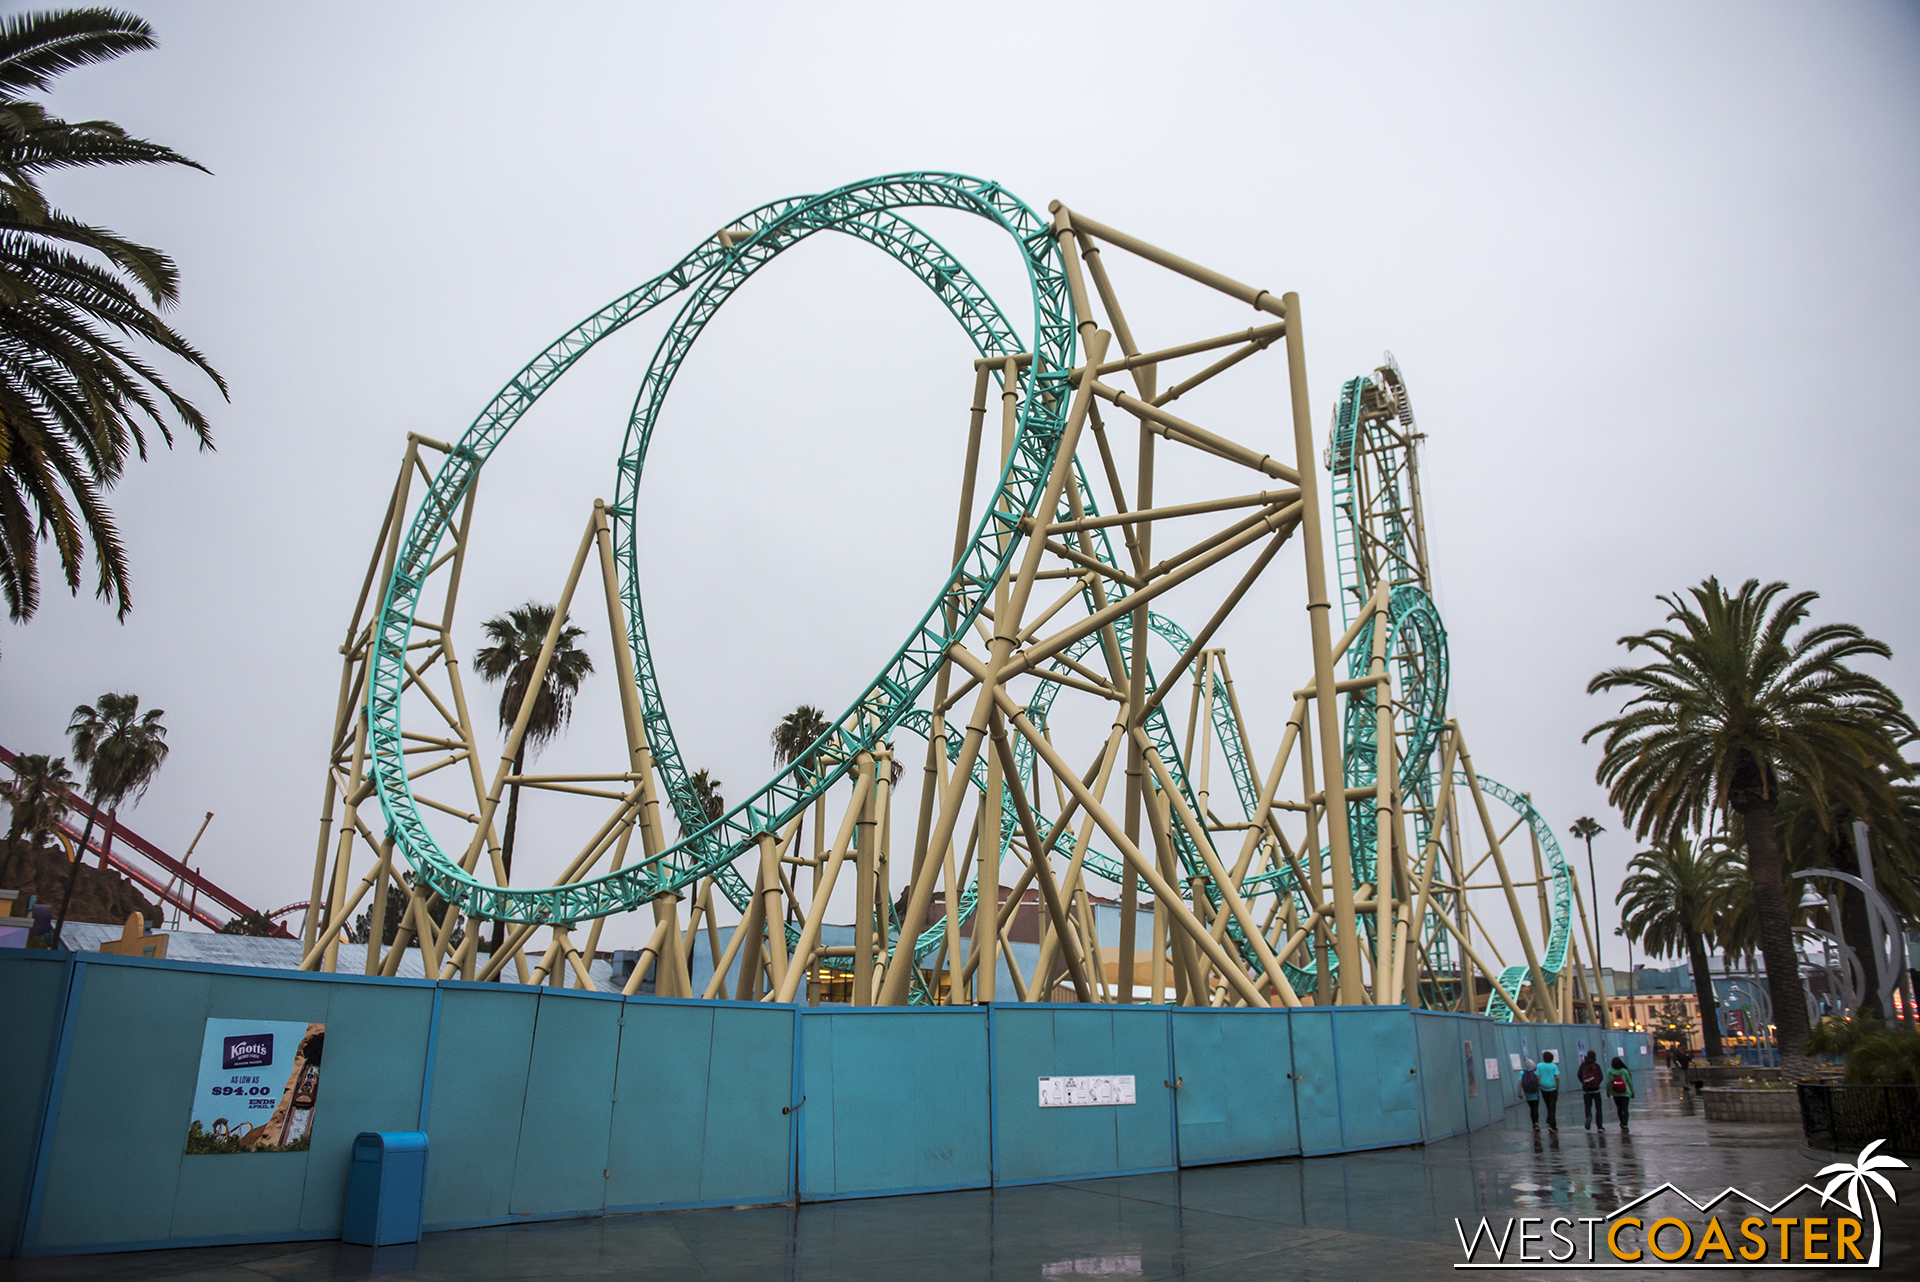 One drizzly March afternoon at Knott's Berry Farm HangTime was testing!